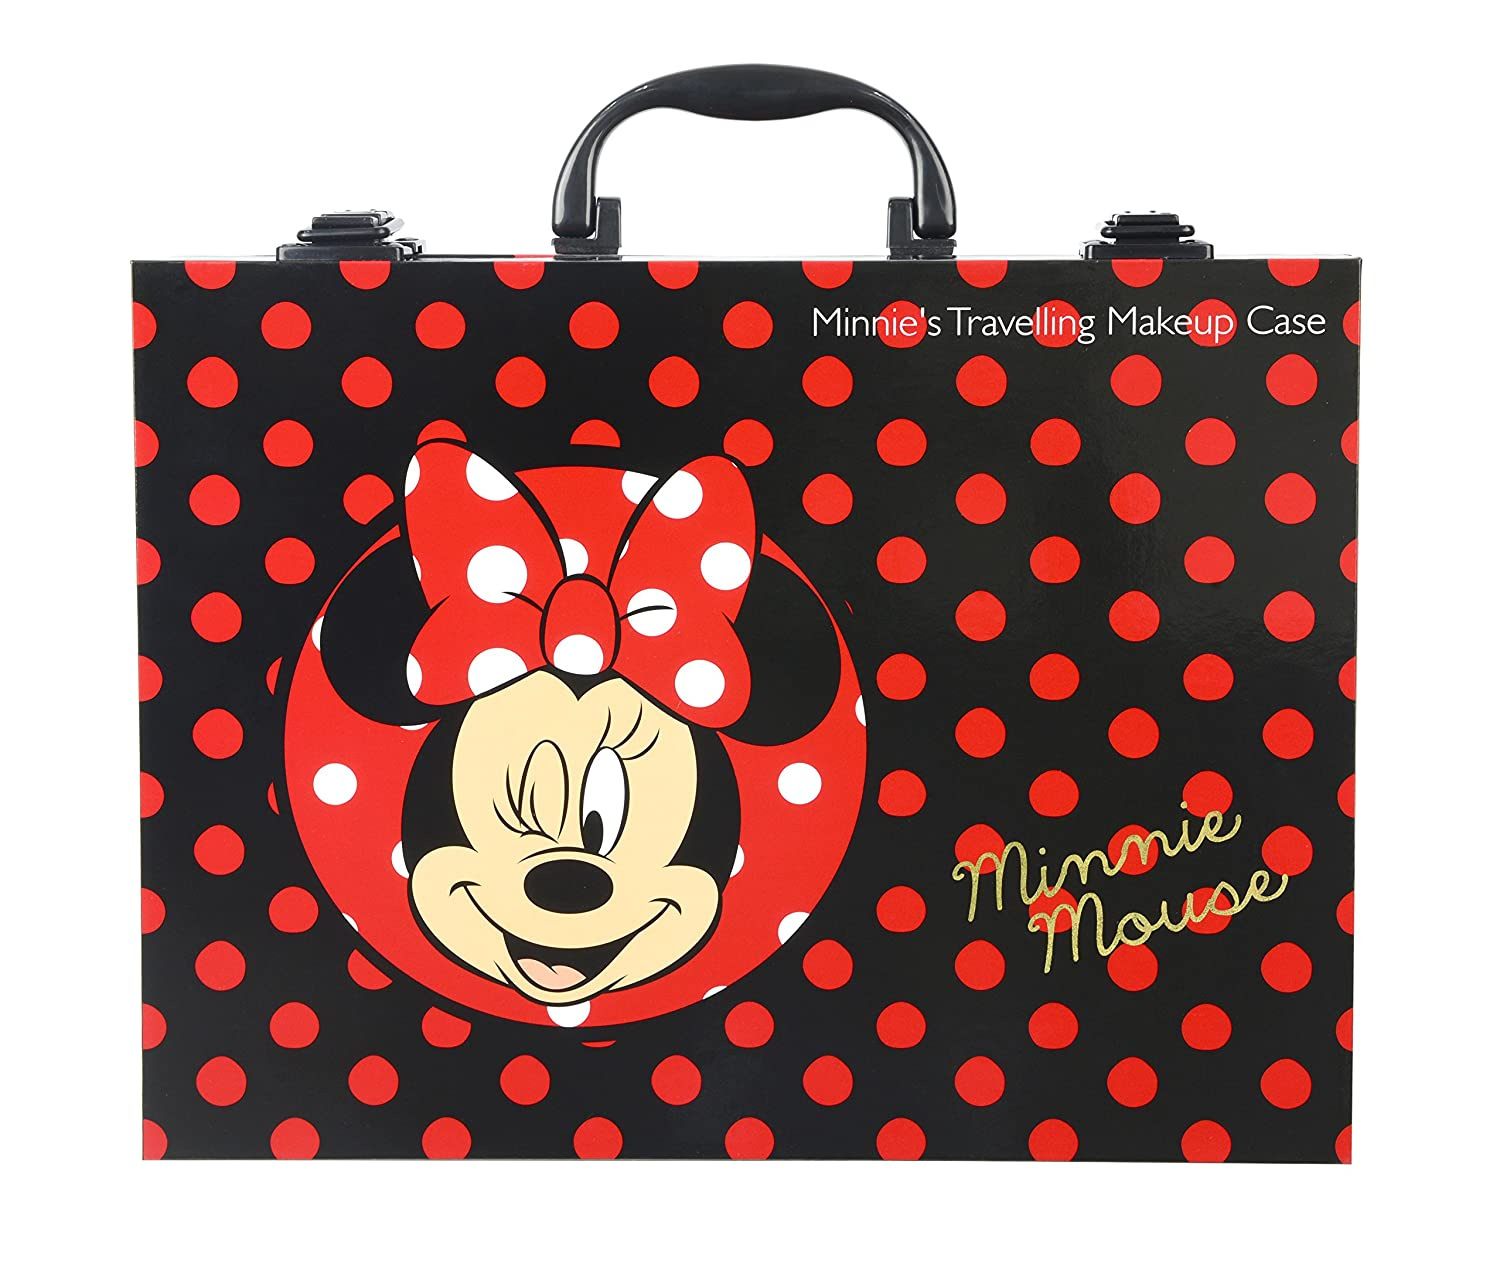 Disney Minnie Mouse Make Up Koffer Umfangreiches Schmink Set Mit